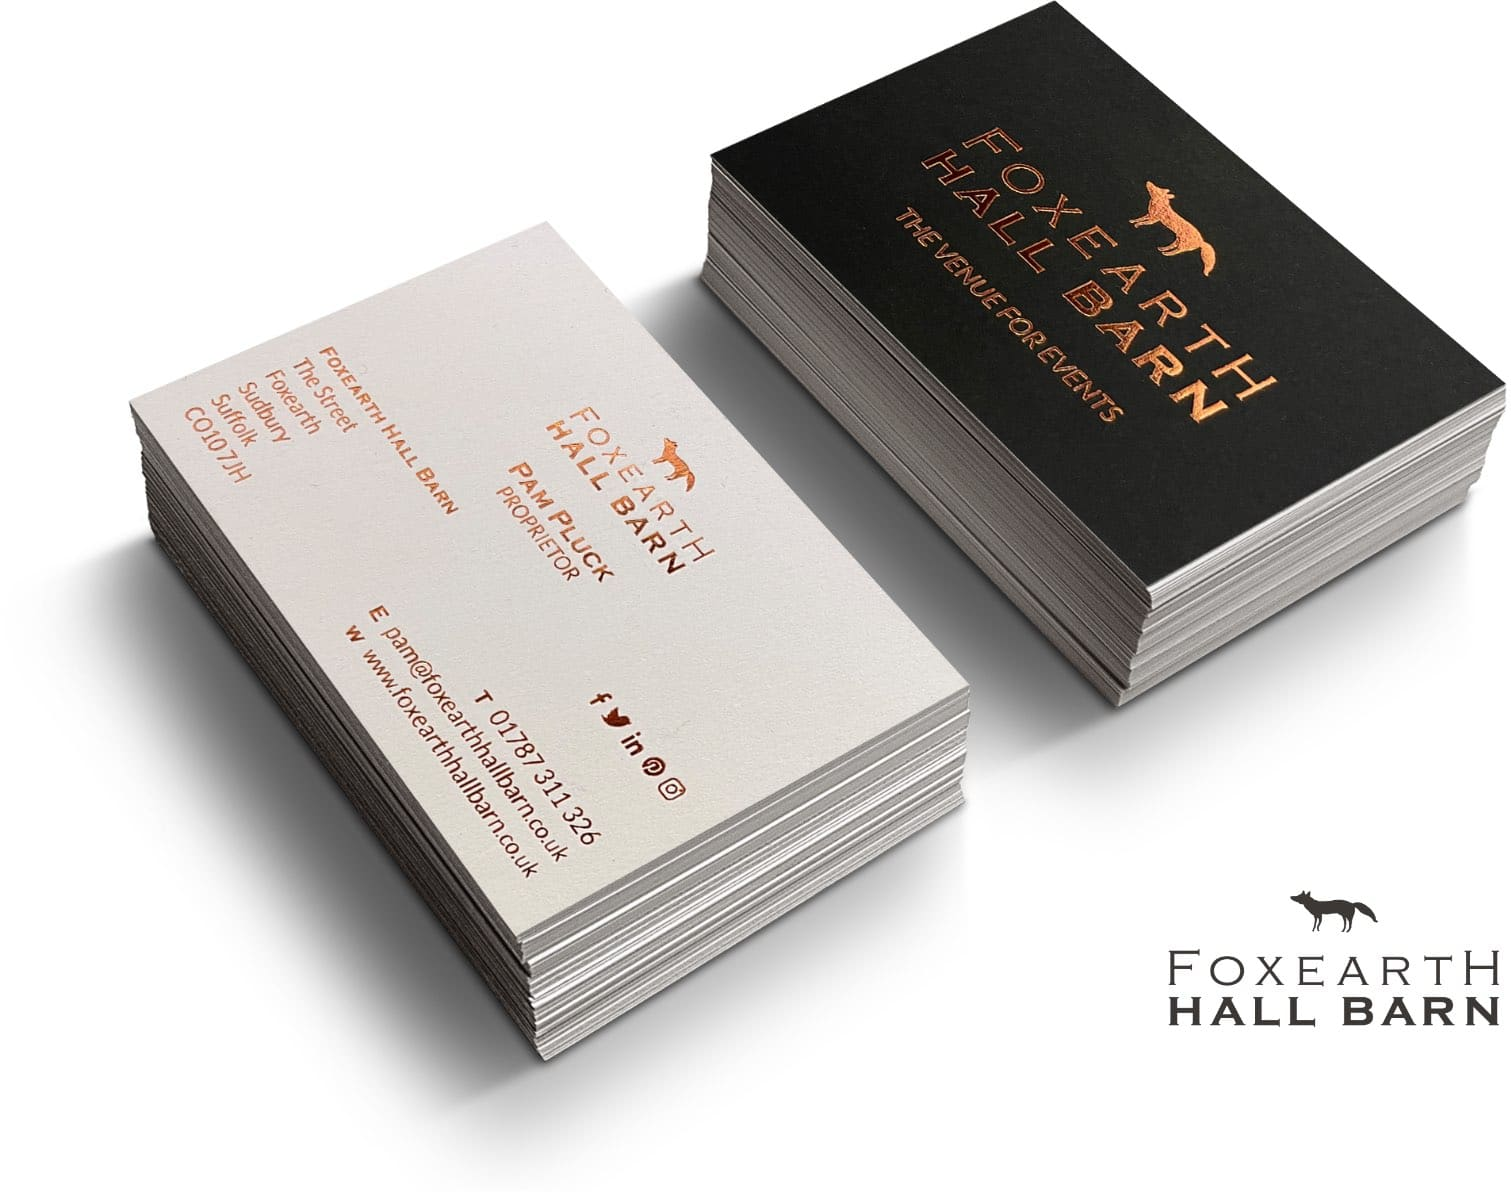 WP Creative, Design and Marketing Agency Suffolk, Branding, Venue Business Cards